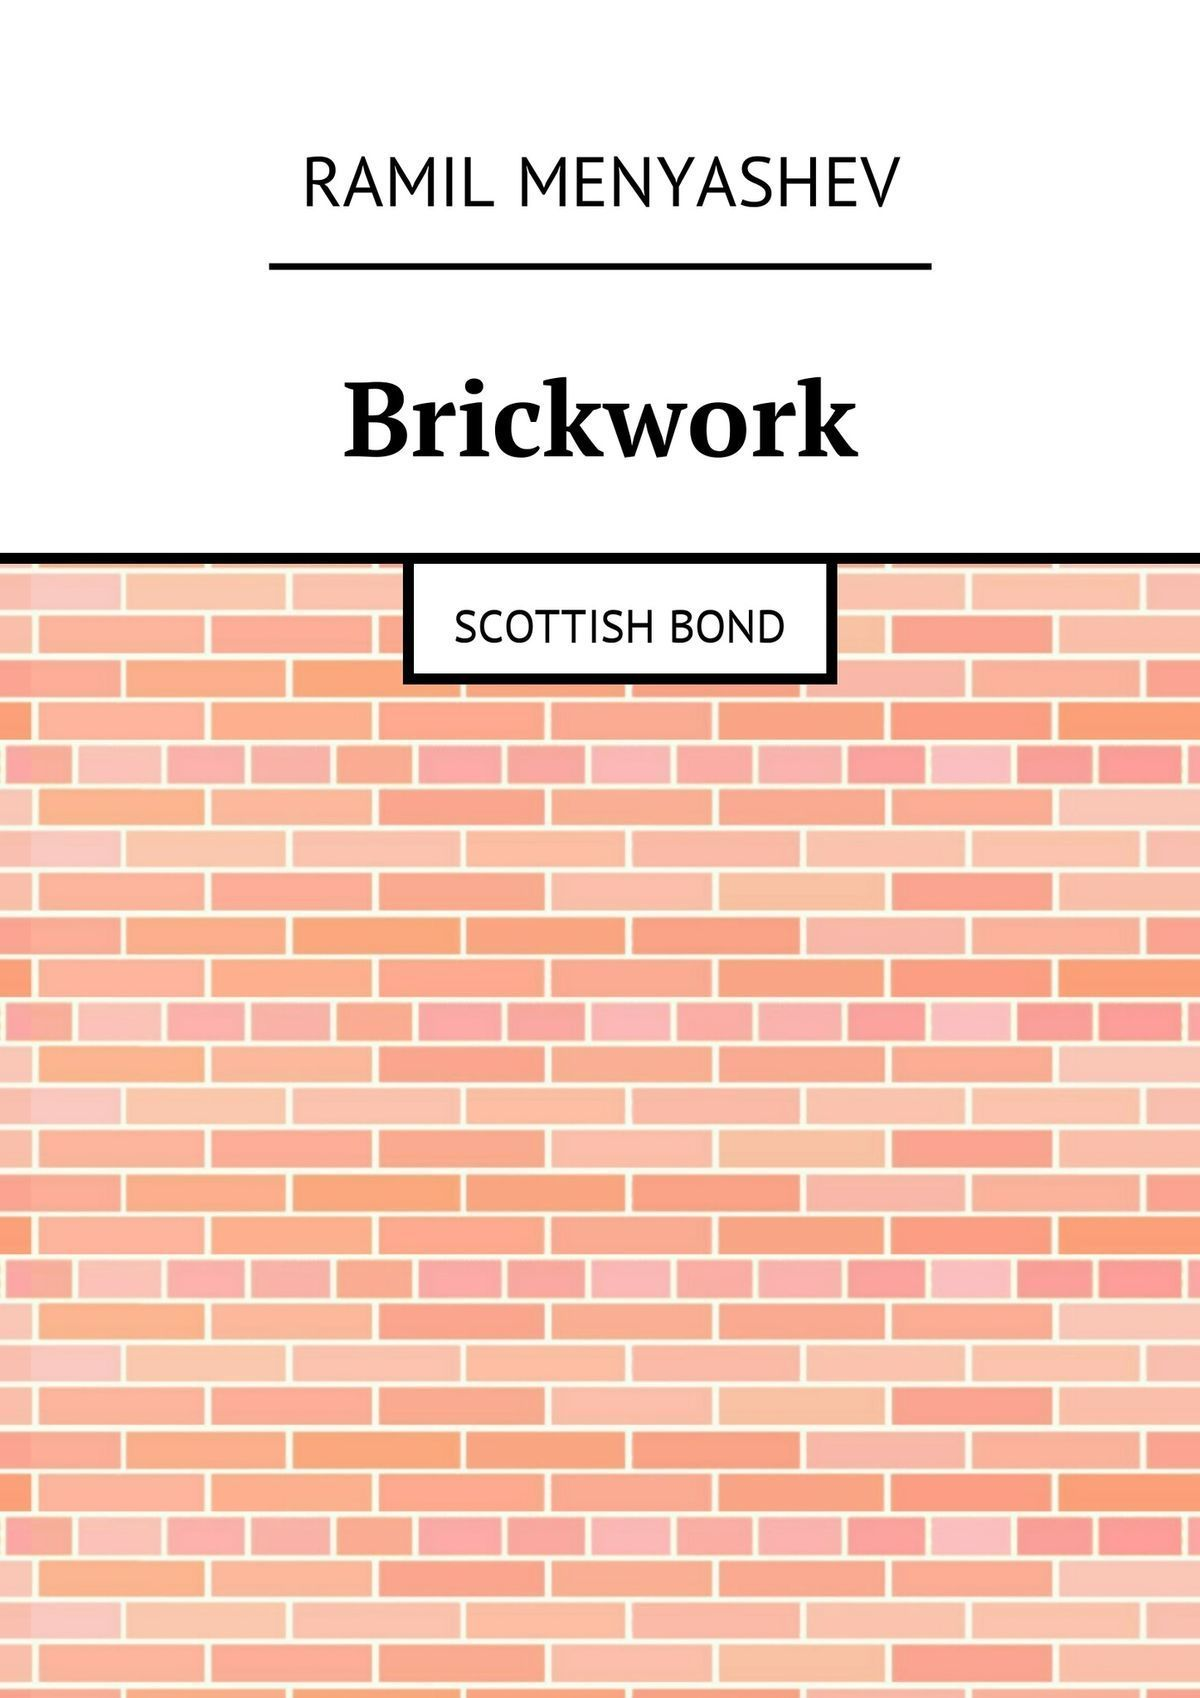 Ramil Menyashev Brickwork. Scottish bond this are not what you see when you order please let me know the color